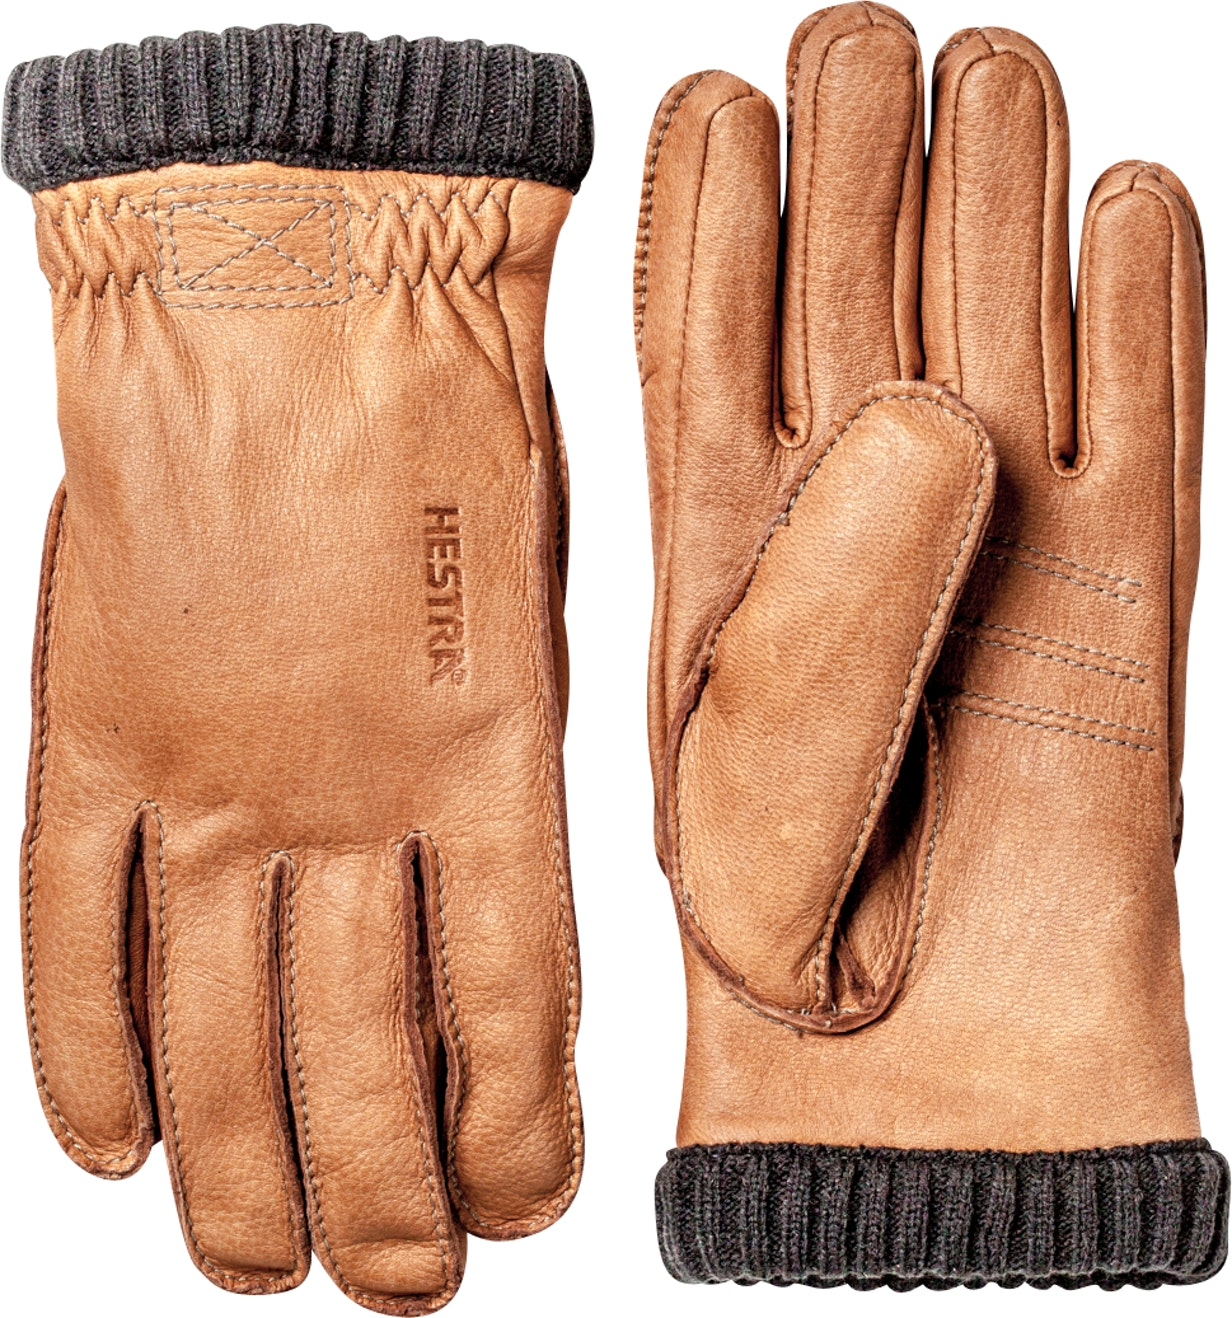 Product image for 20210 Deerskin Primaloft Rib